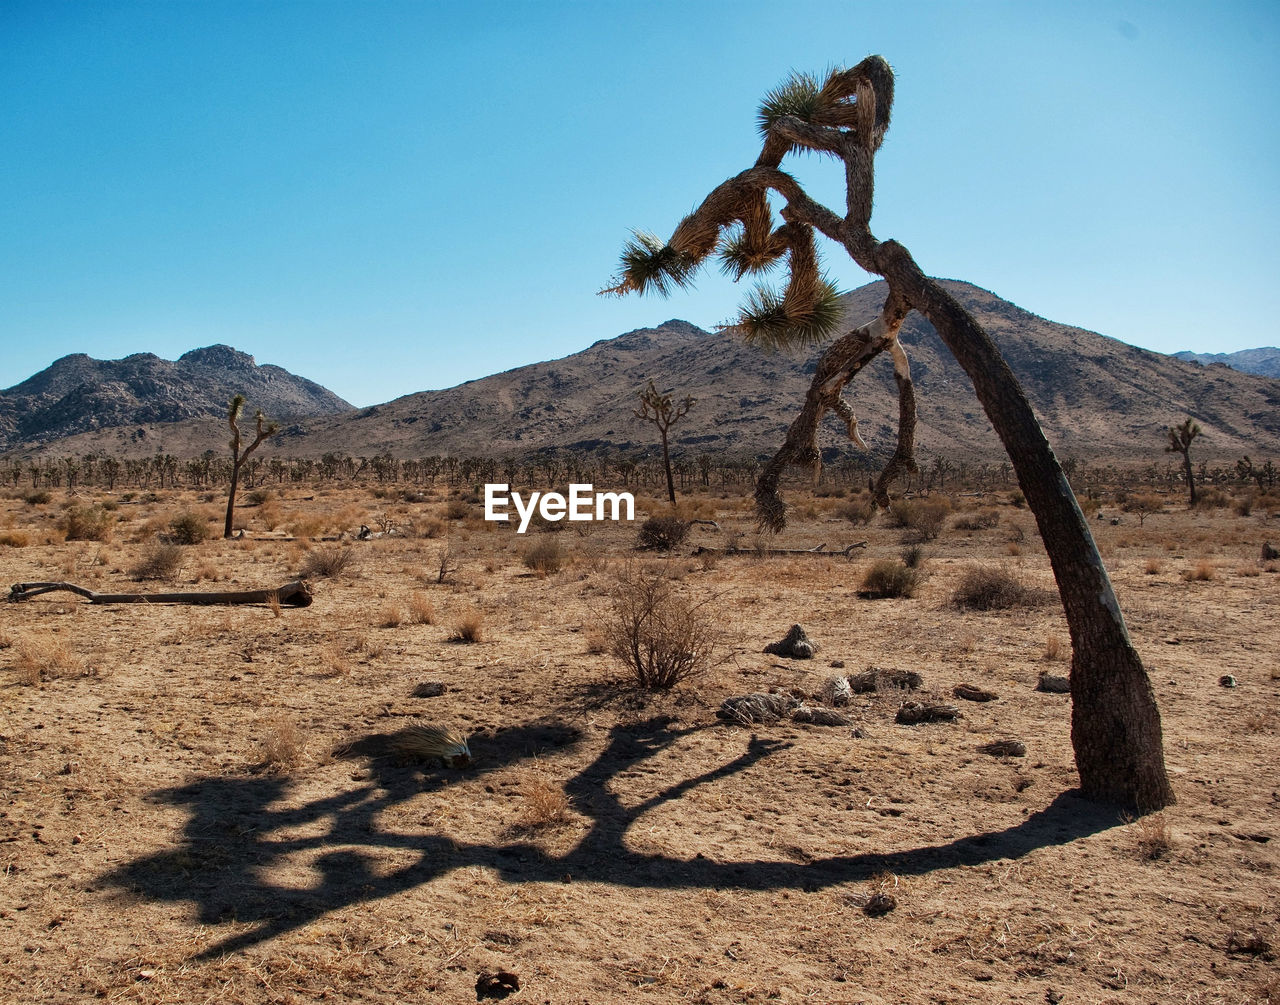 VIEW OF TREE ON DESERT AGAINST CLEAR SKY